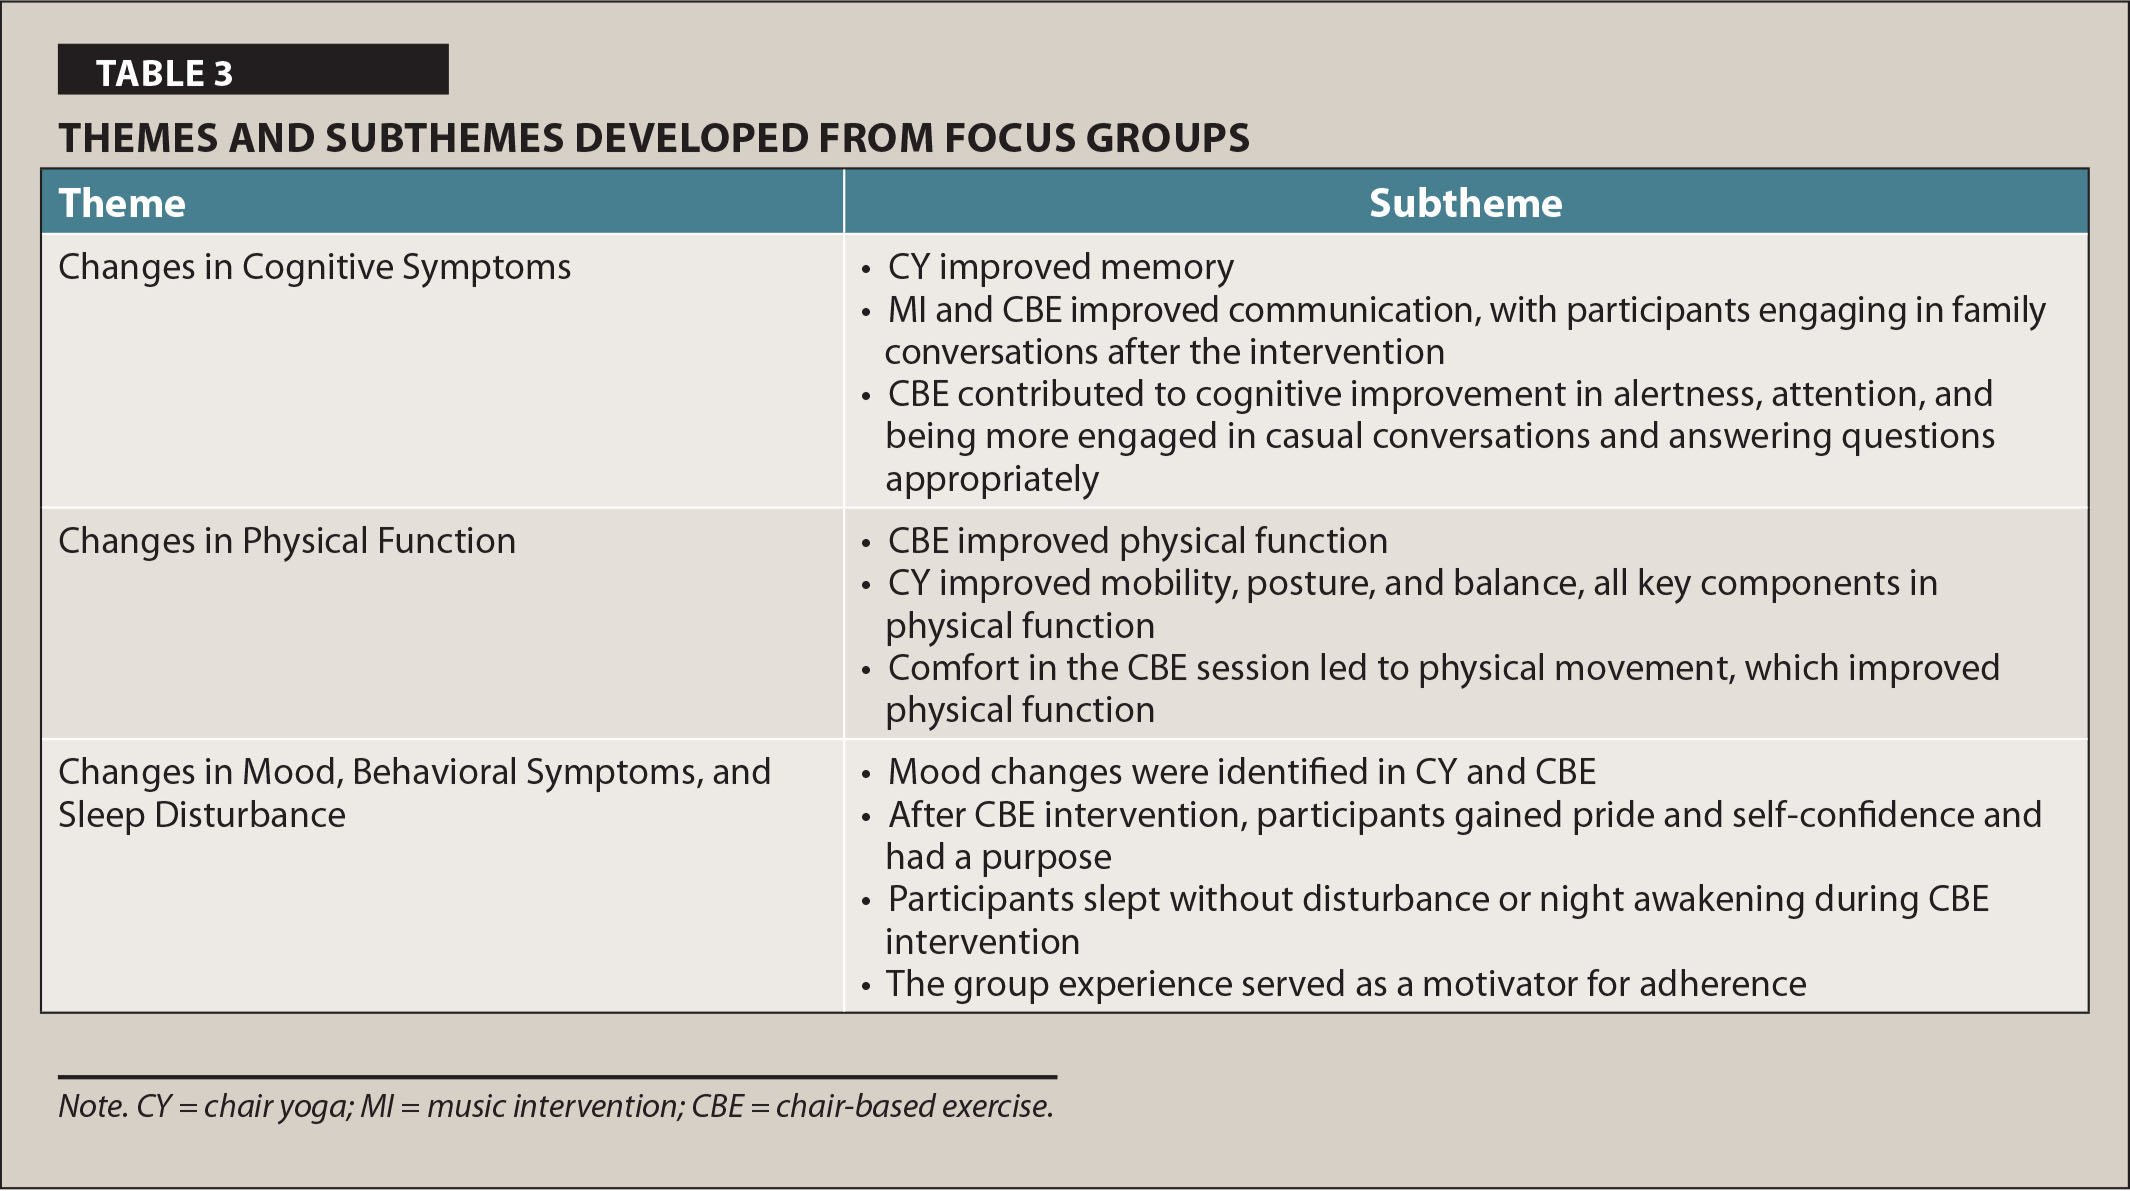 Themes and Subthemes Developed from Focus Groups